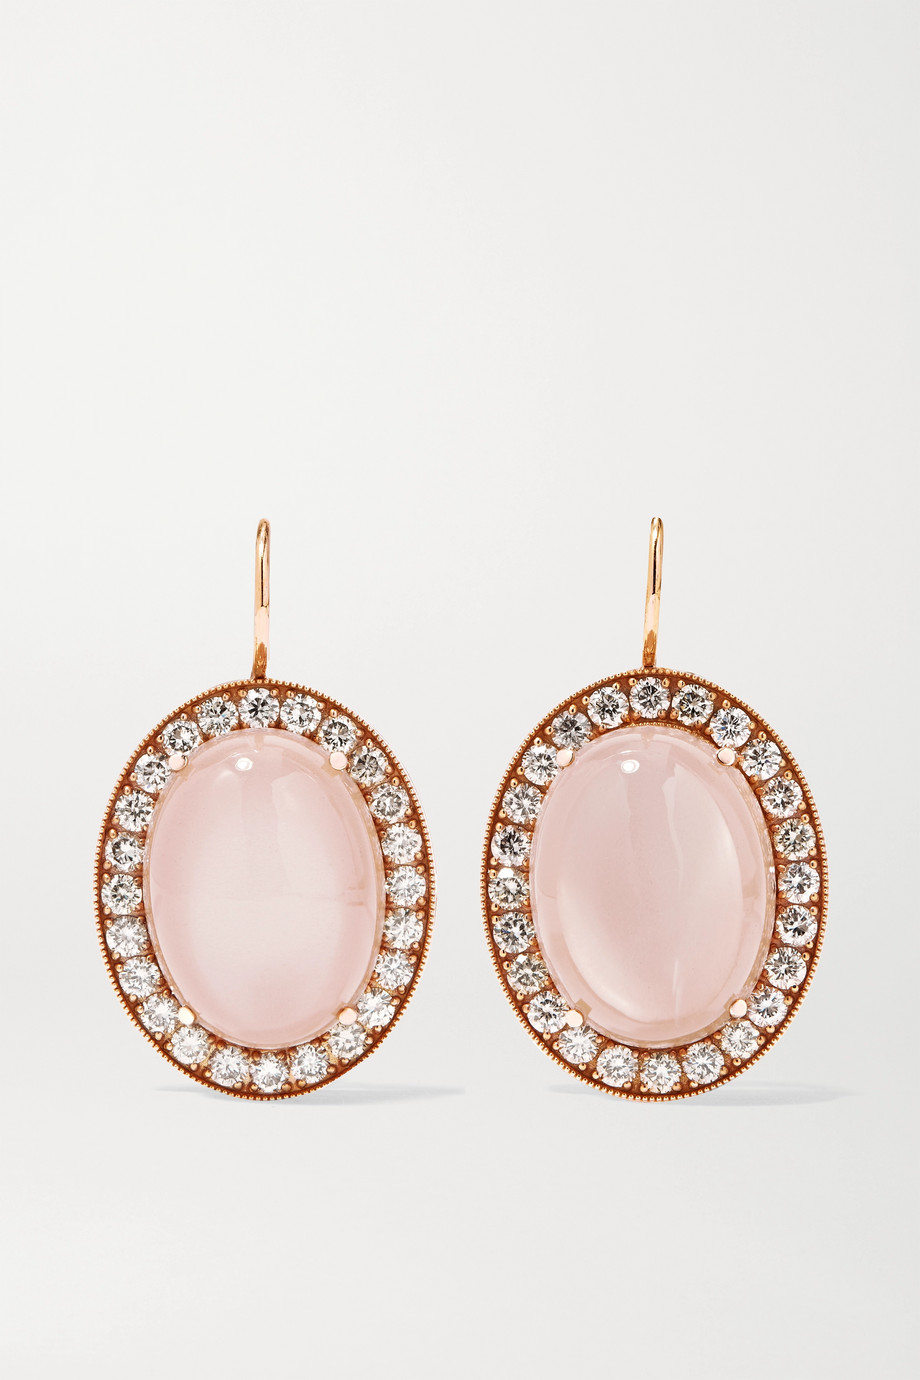 Andrea Fohrman Boucles d'oreilles en or rose 18 carats, pierres de lune et diamants